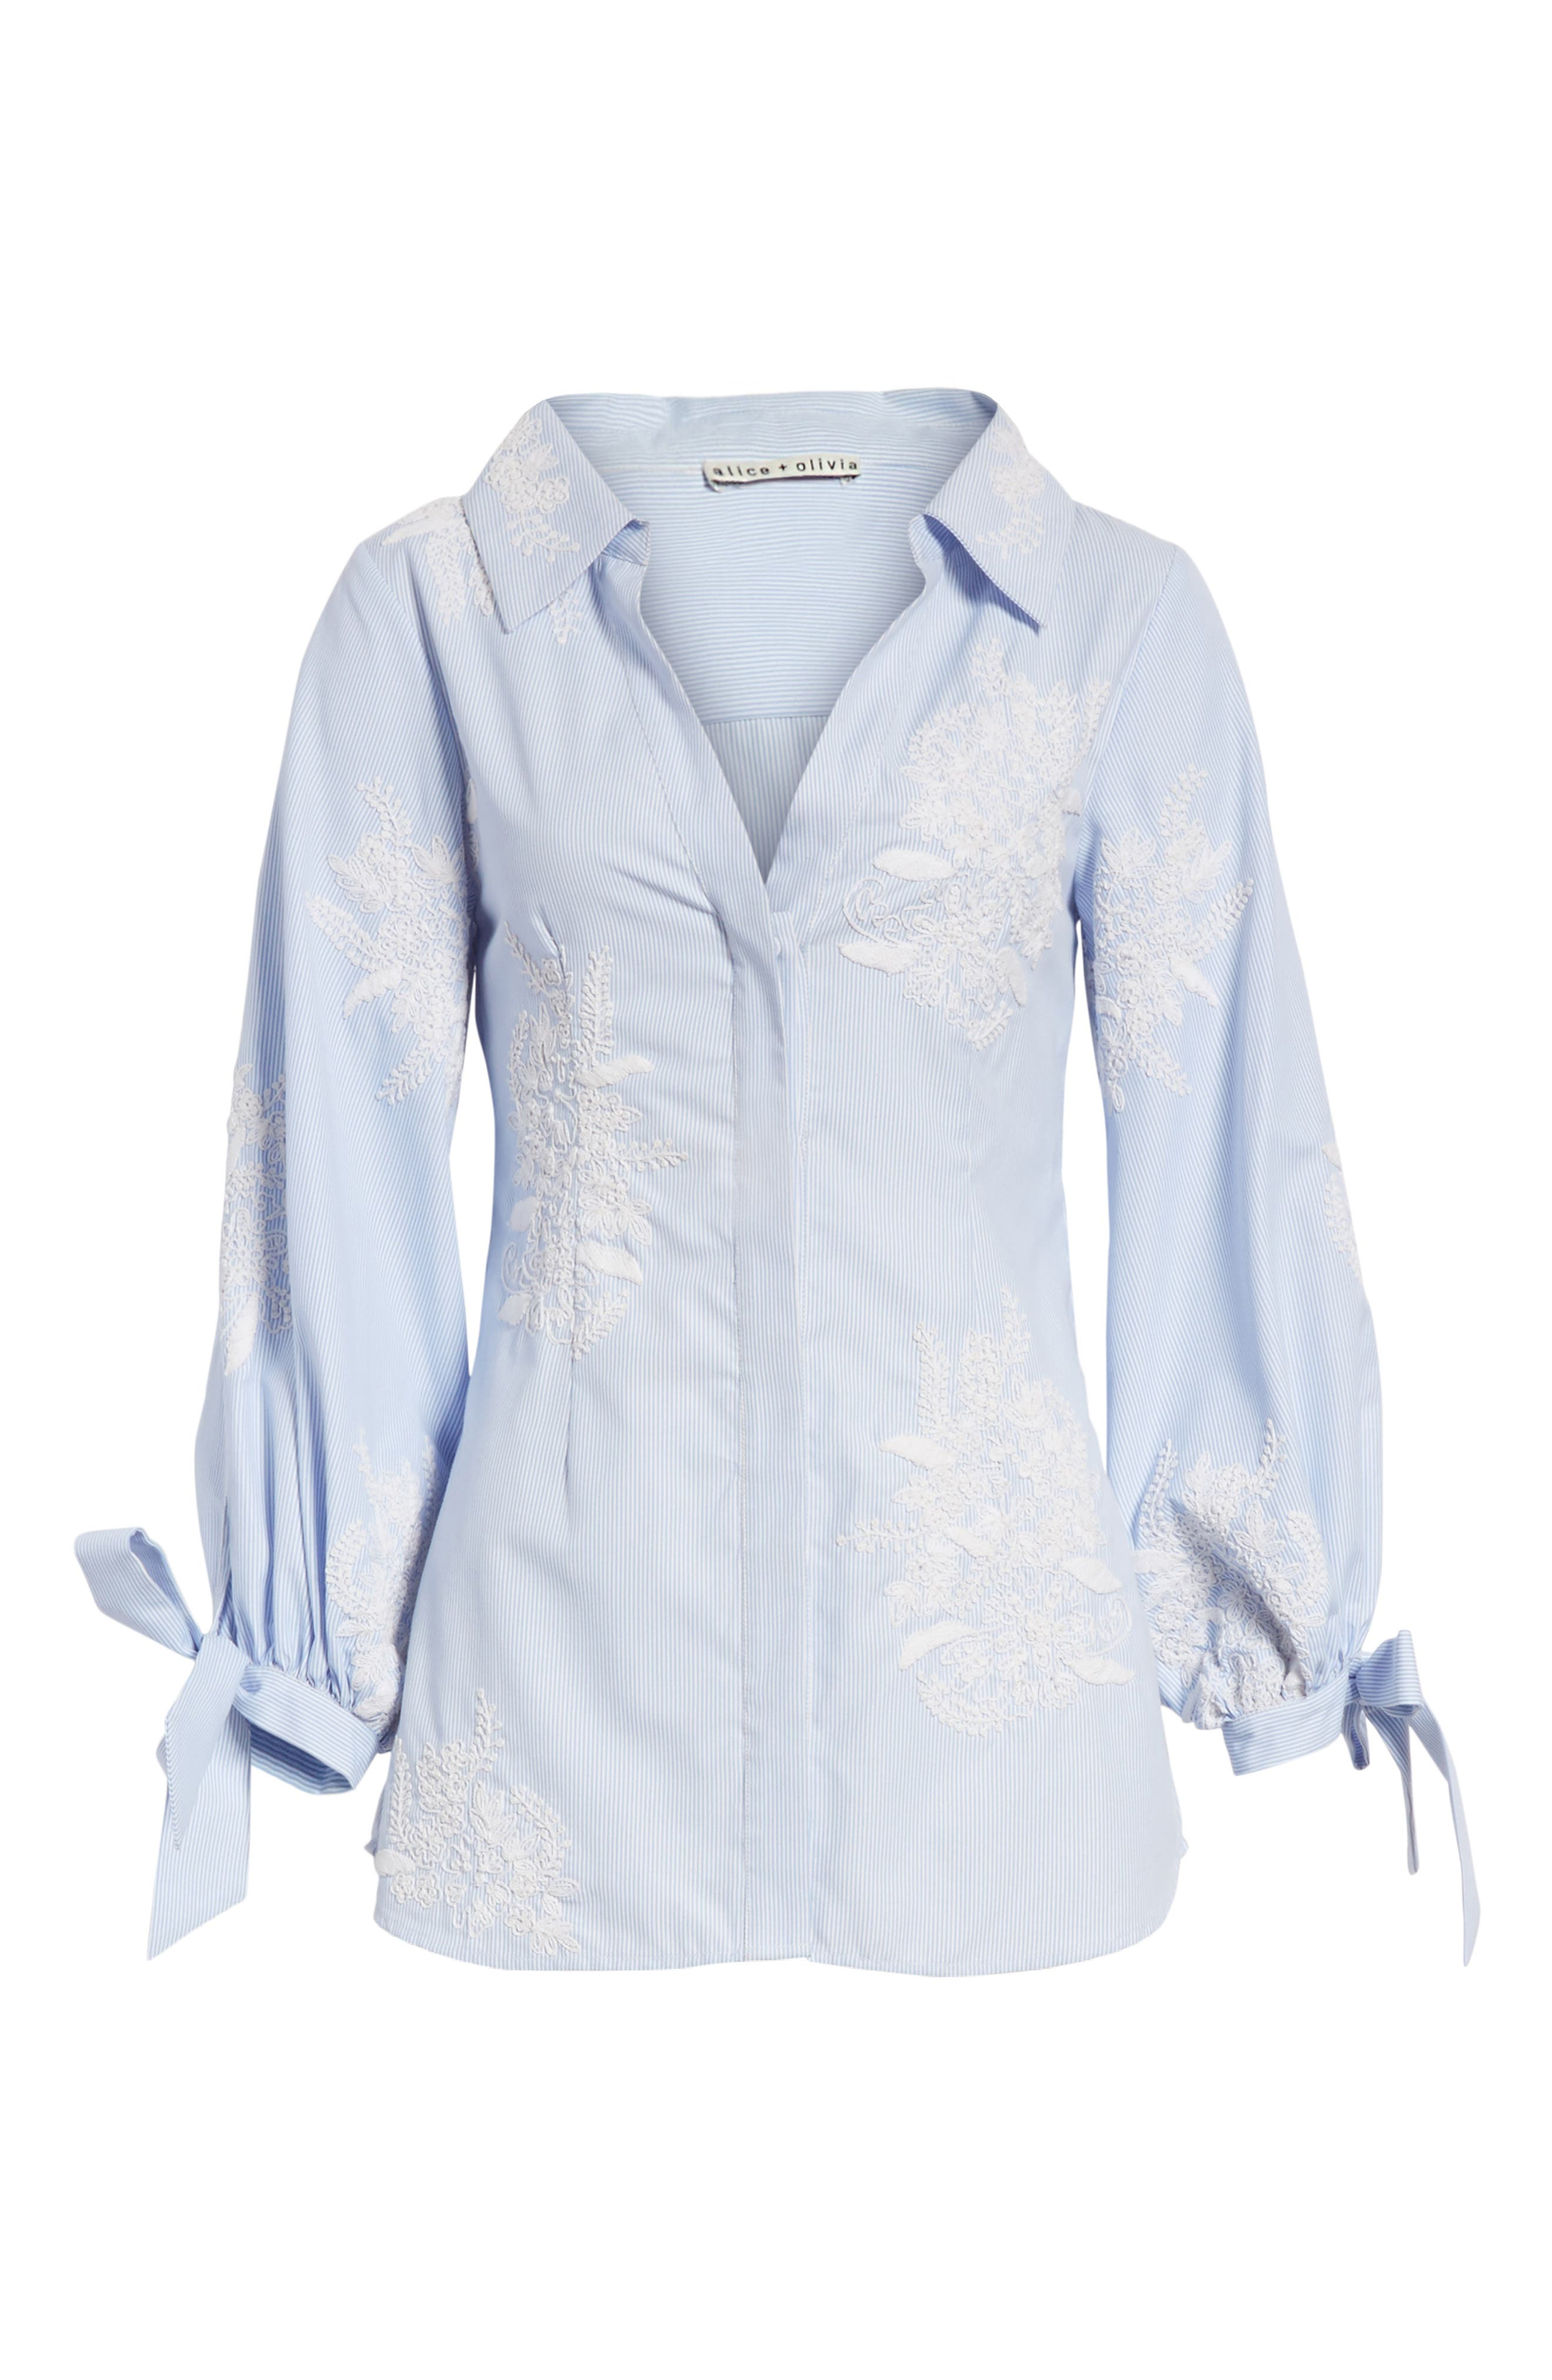 Toro Embroidered Tie Sleeve Blouse,                             Alternate thumbnail 6, color,                             422